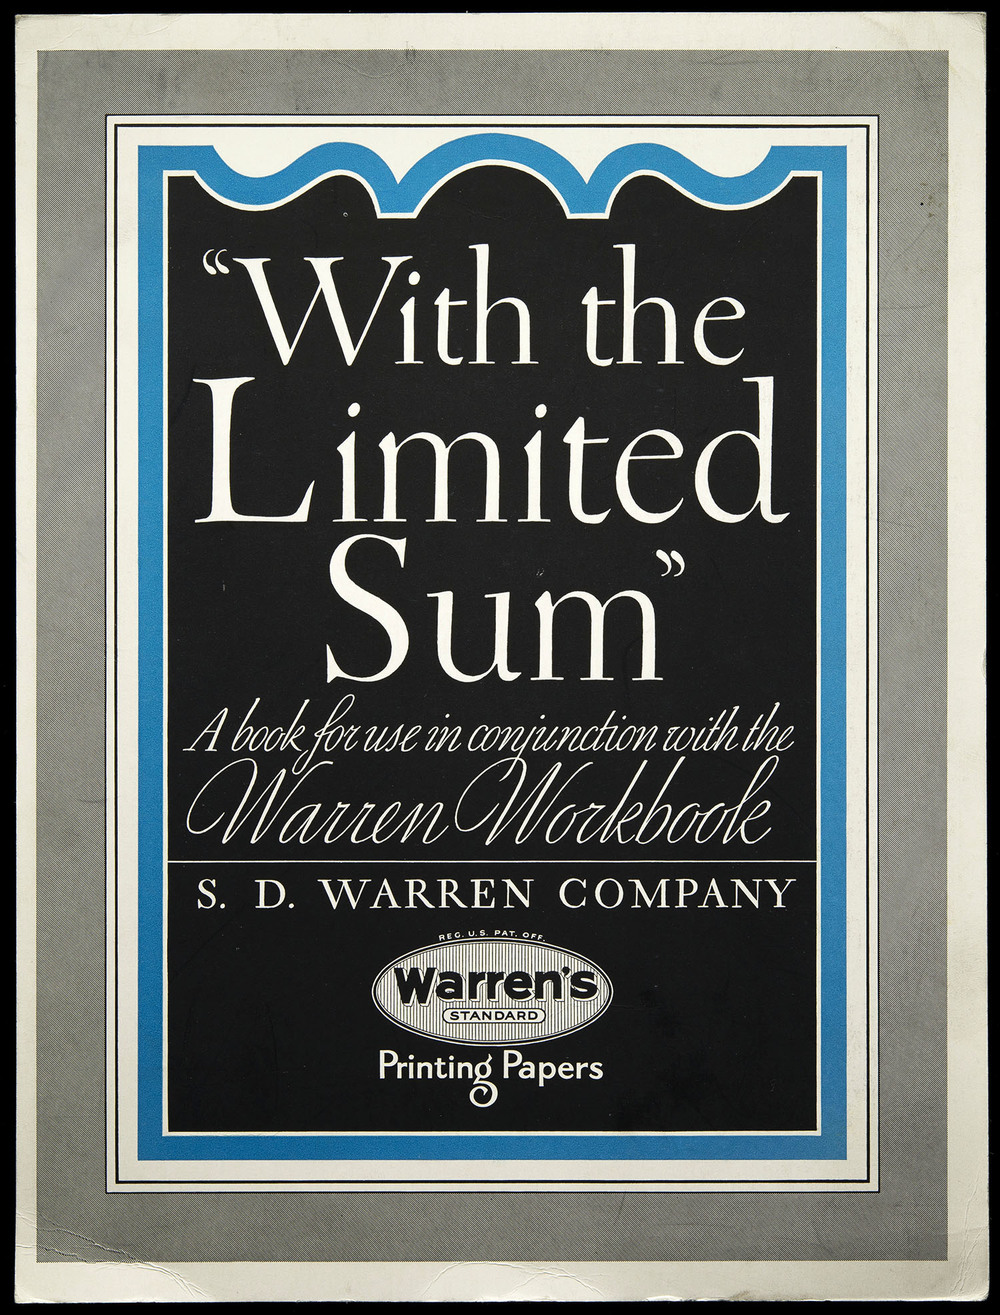 Brochure for Warren's Paper, circa 1930, 21 x 28 cm